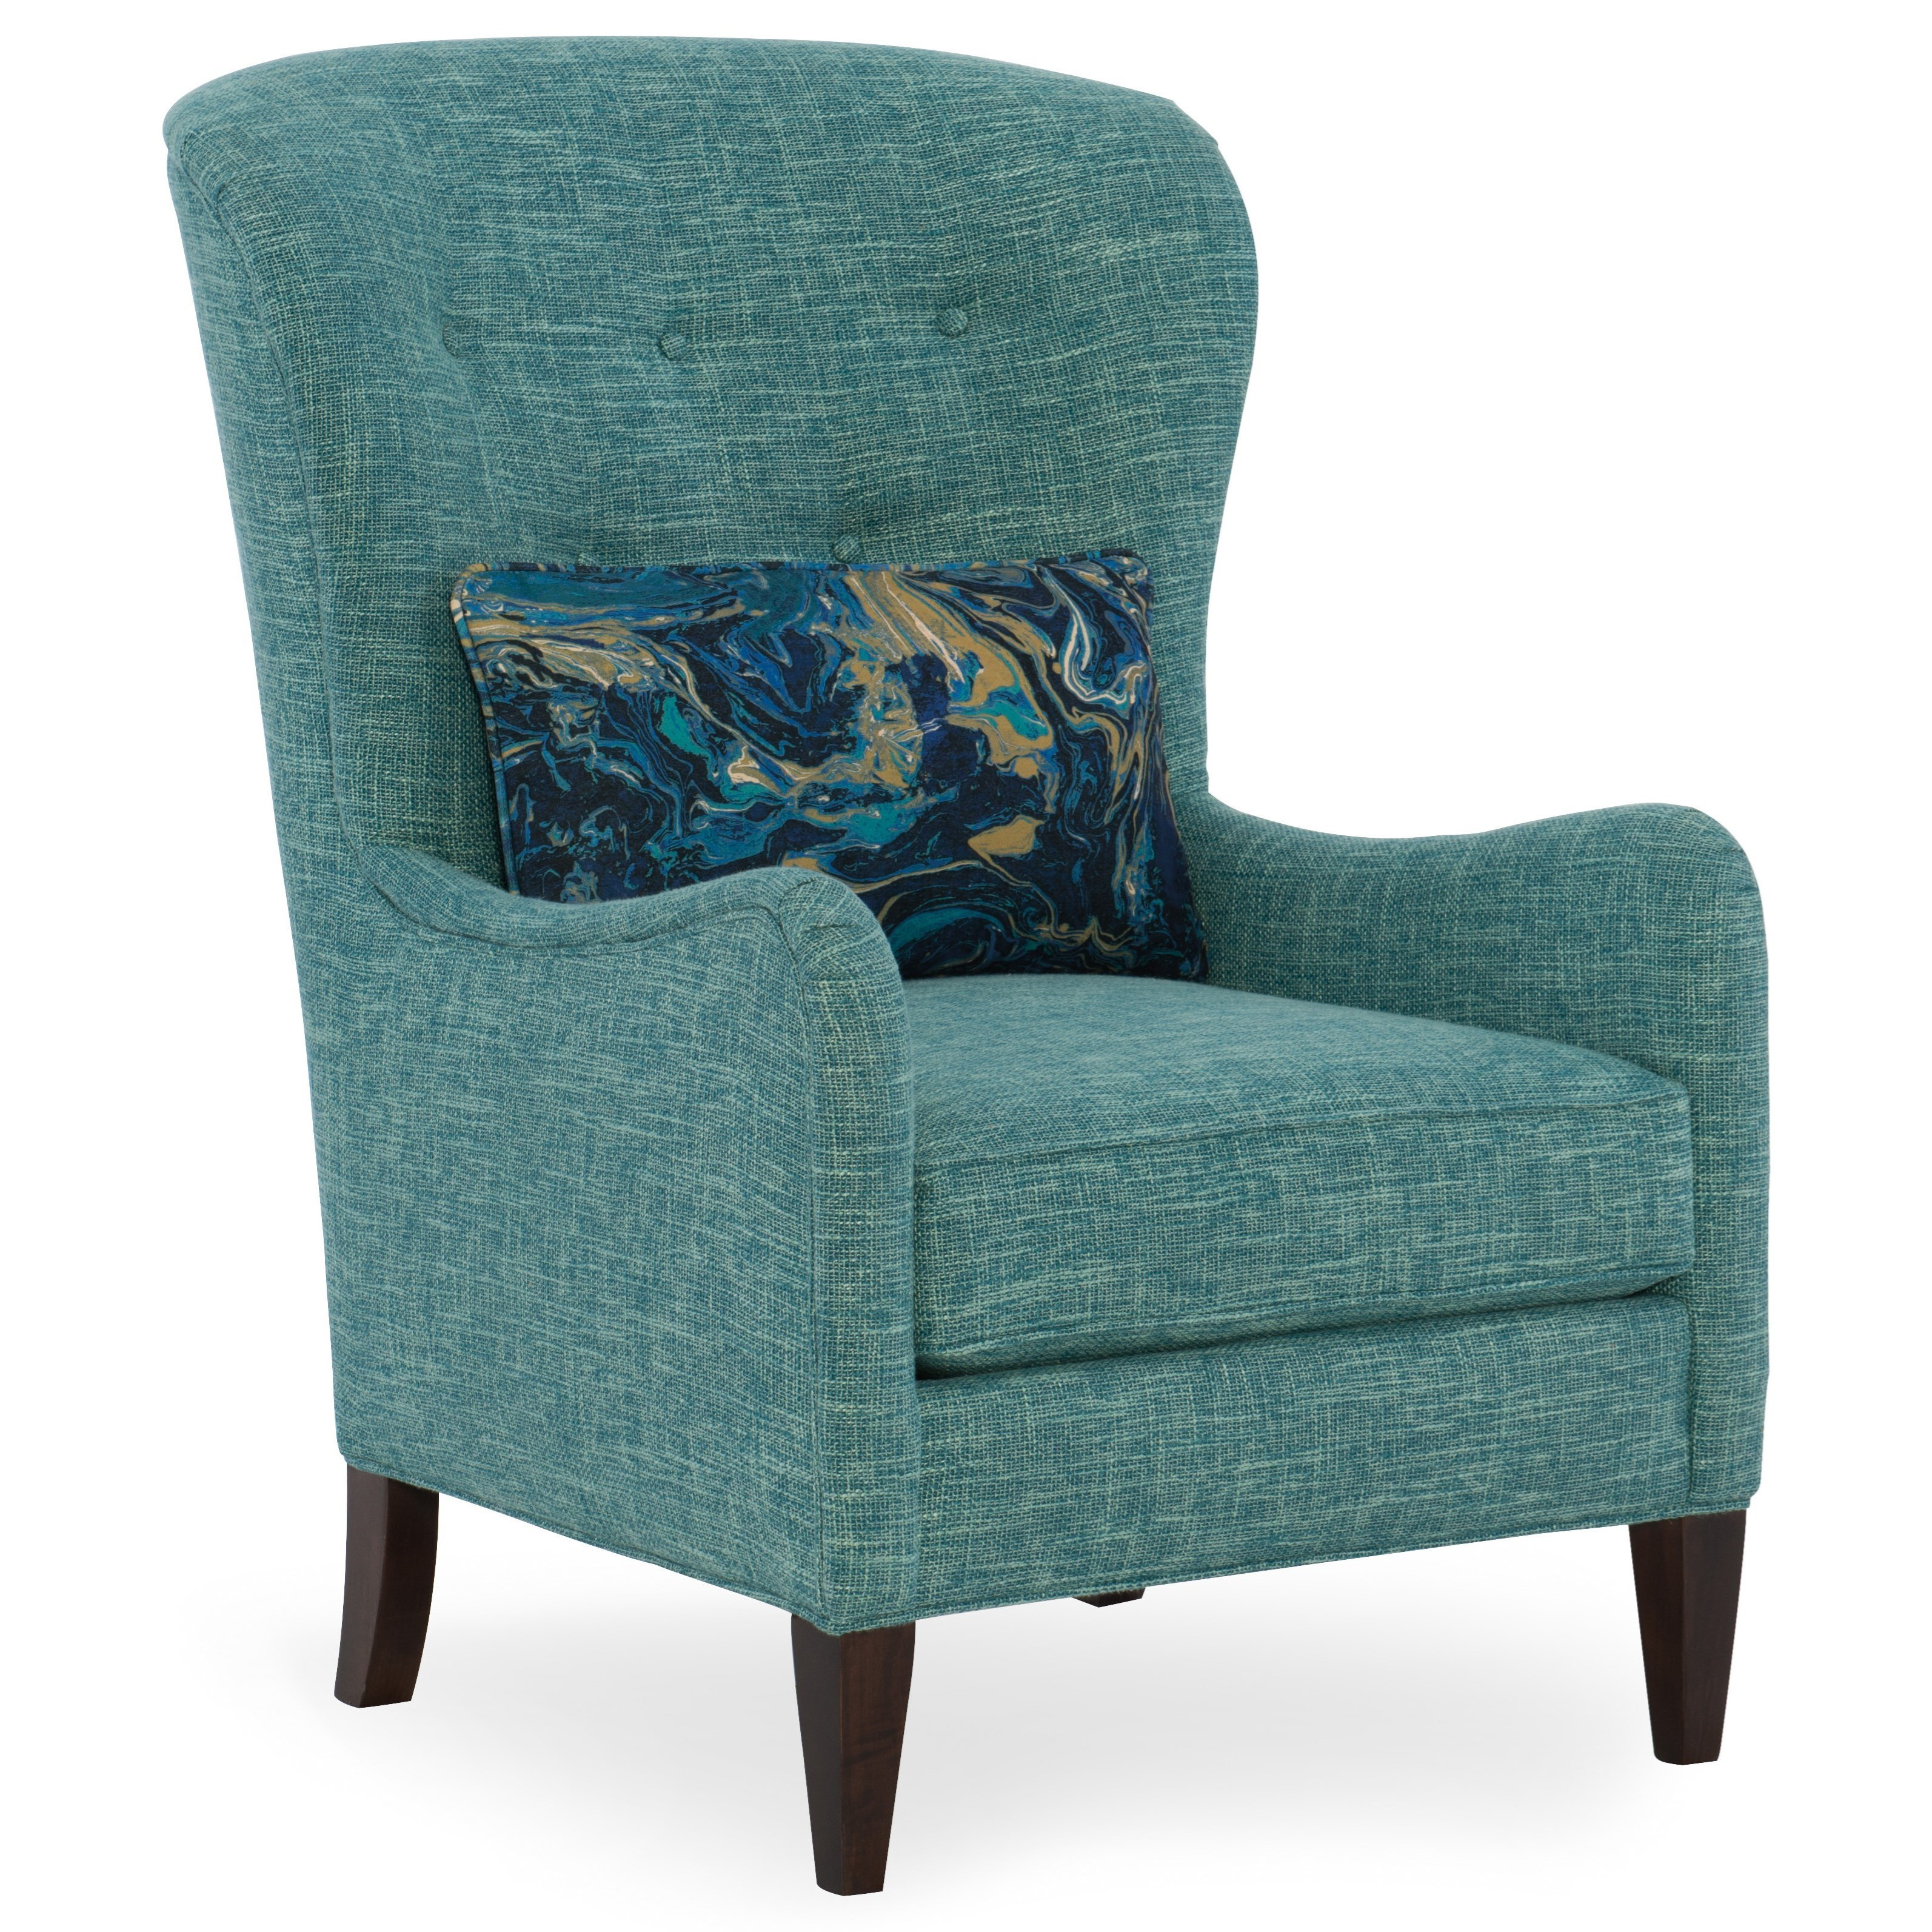 Sam Moore Mavis 2090 Transitional Tufted Back Chair Dunk